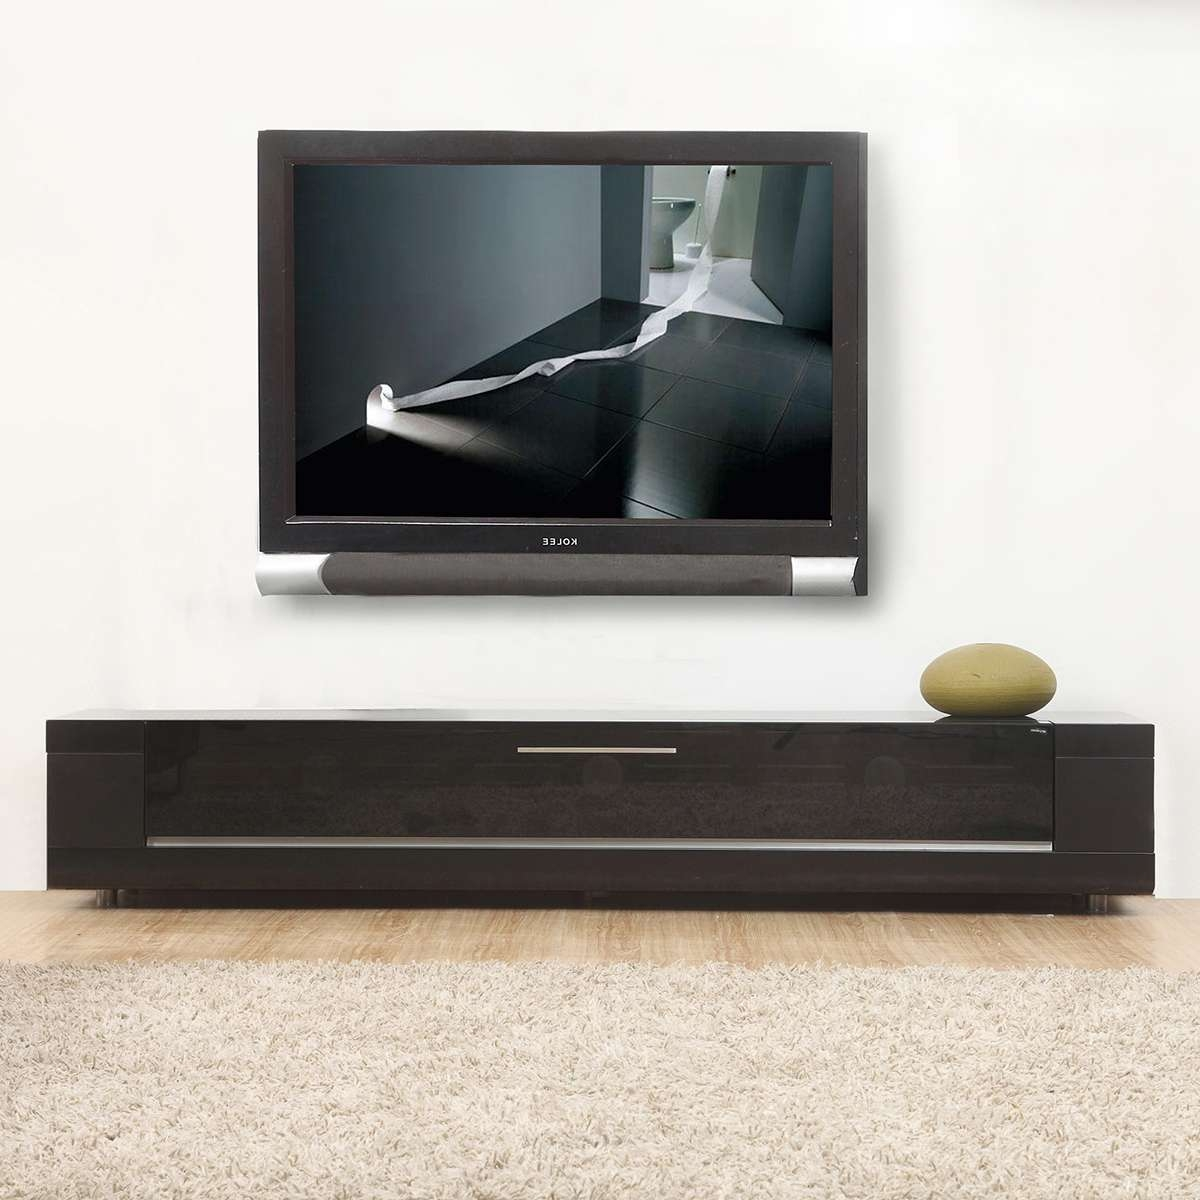 Tv Television Stands 71 & Wider At Dynamic Home Decor Intended For Contemporary Black Tv Stands (View 7 of 15)